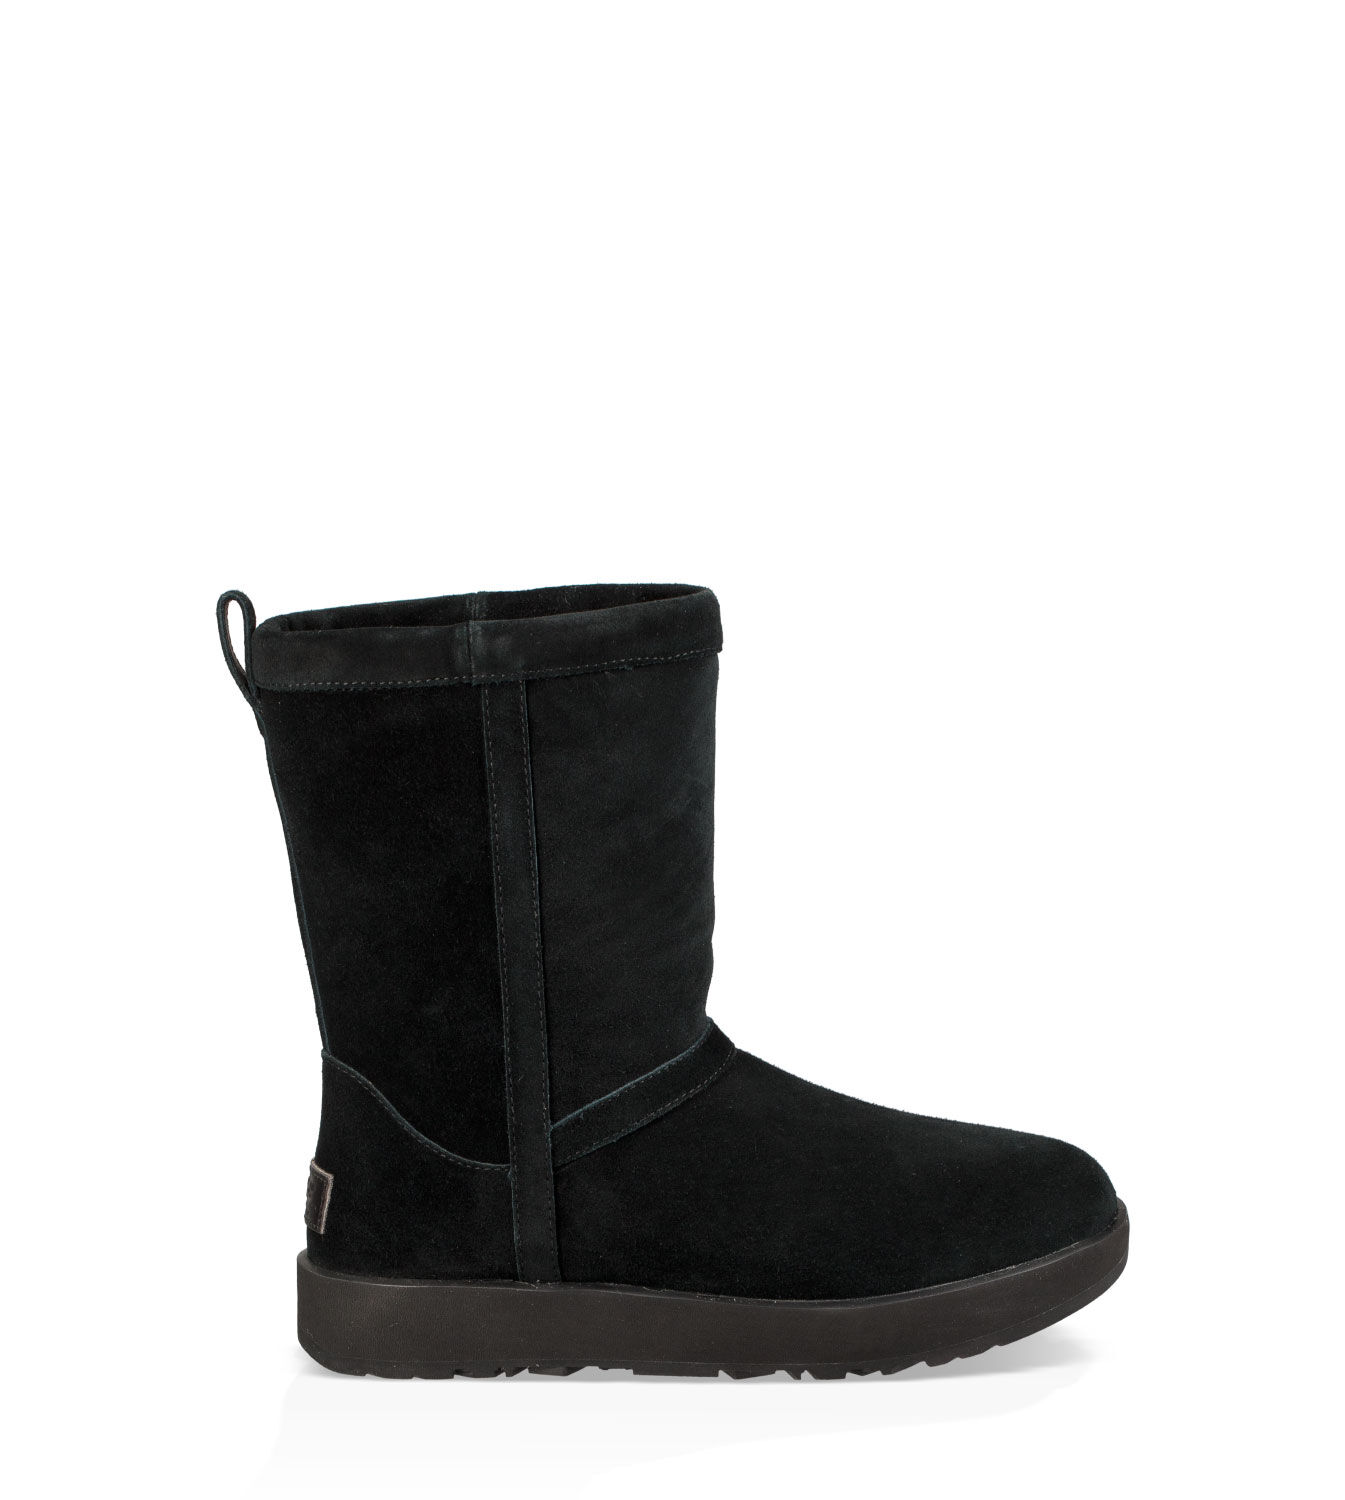 ugg Classic Mini Stivali Marrone